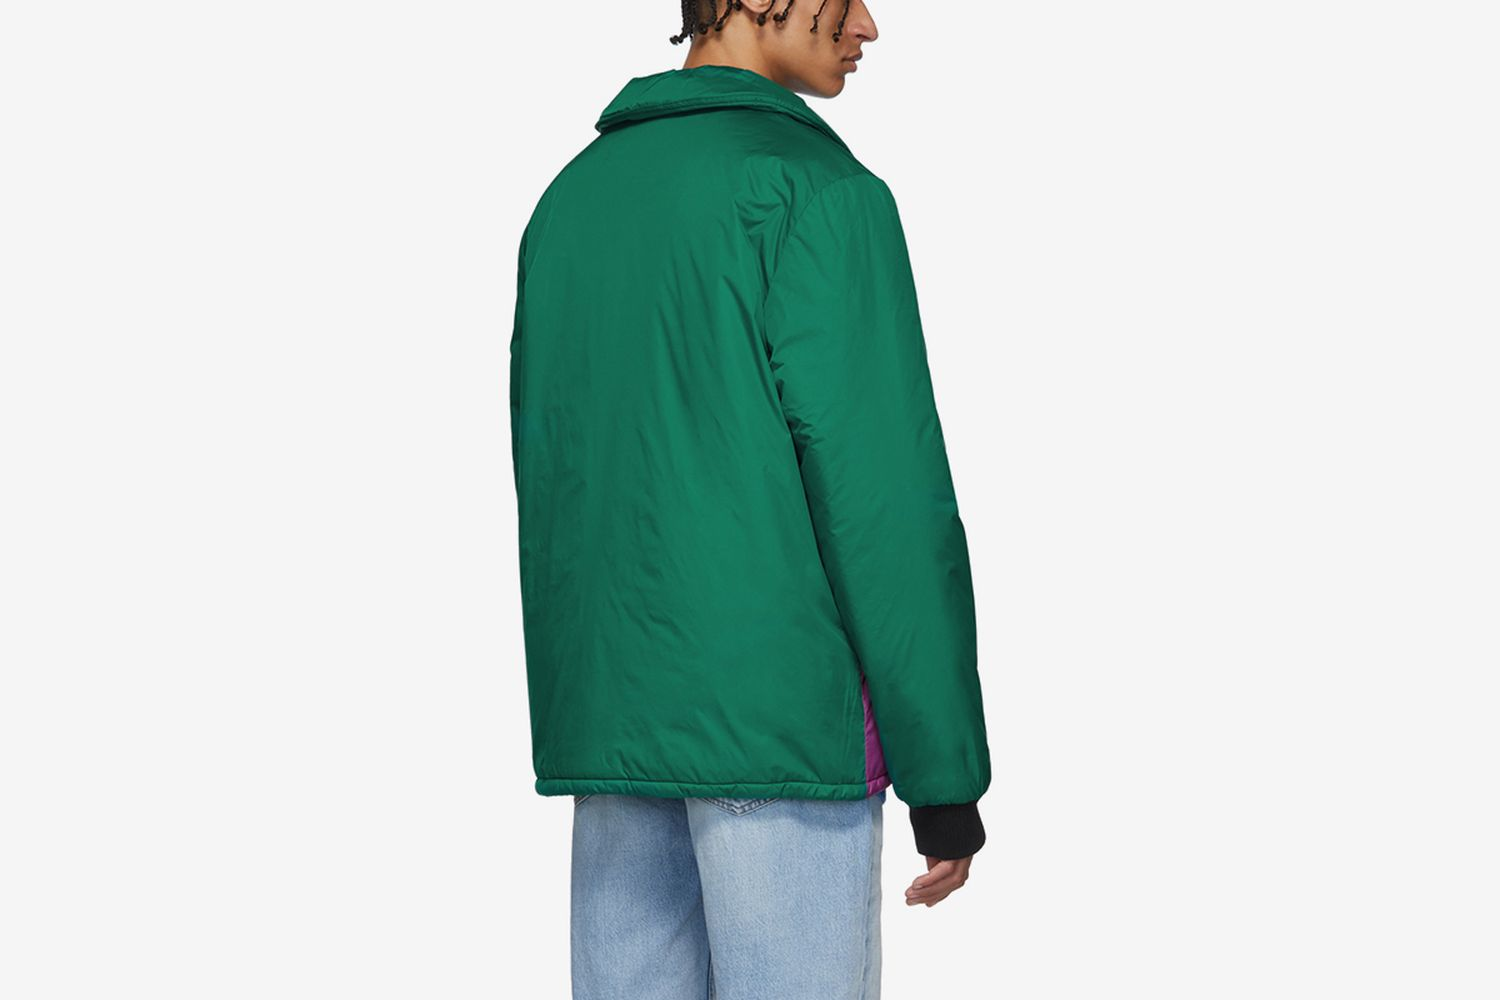 Odgar Face Jacket